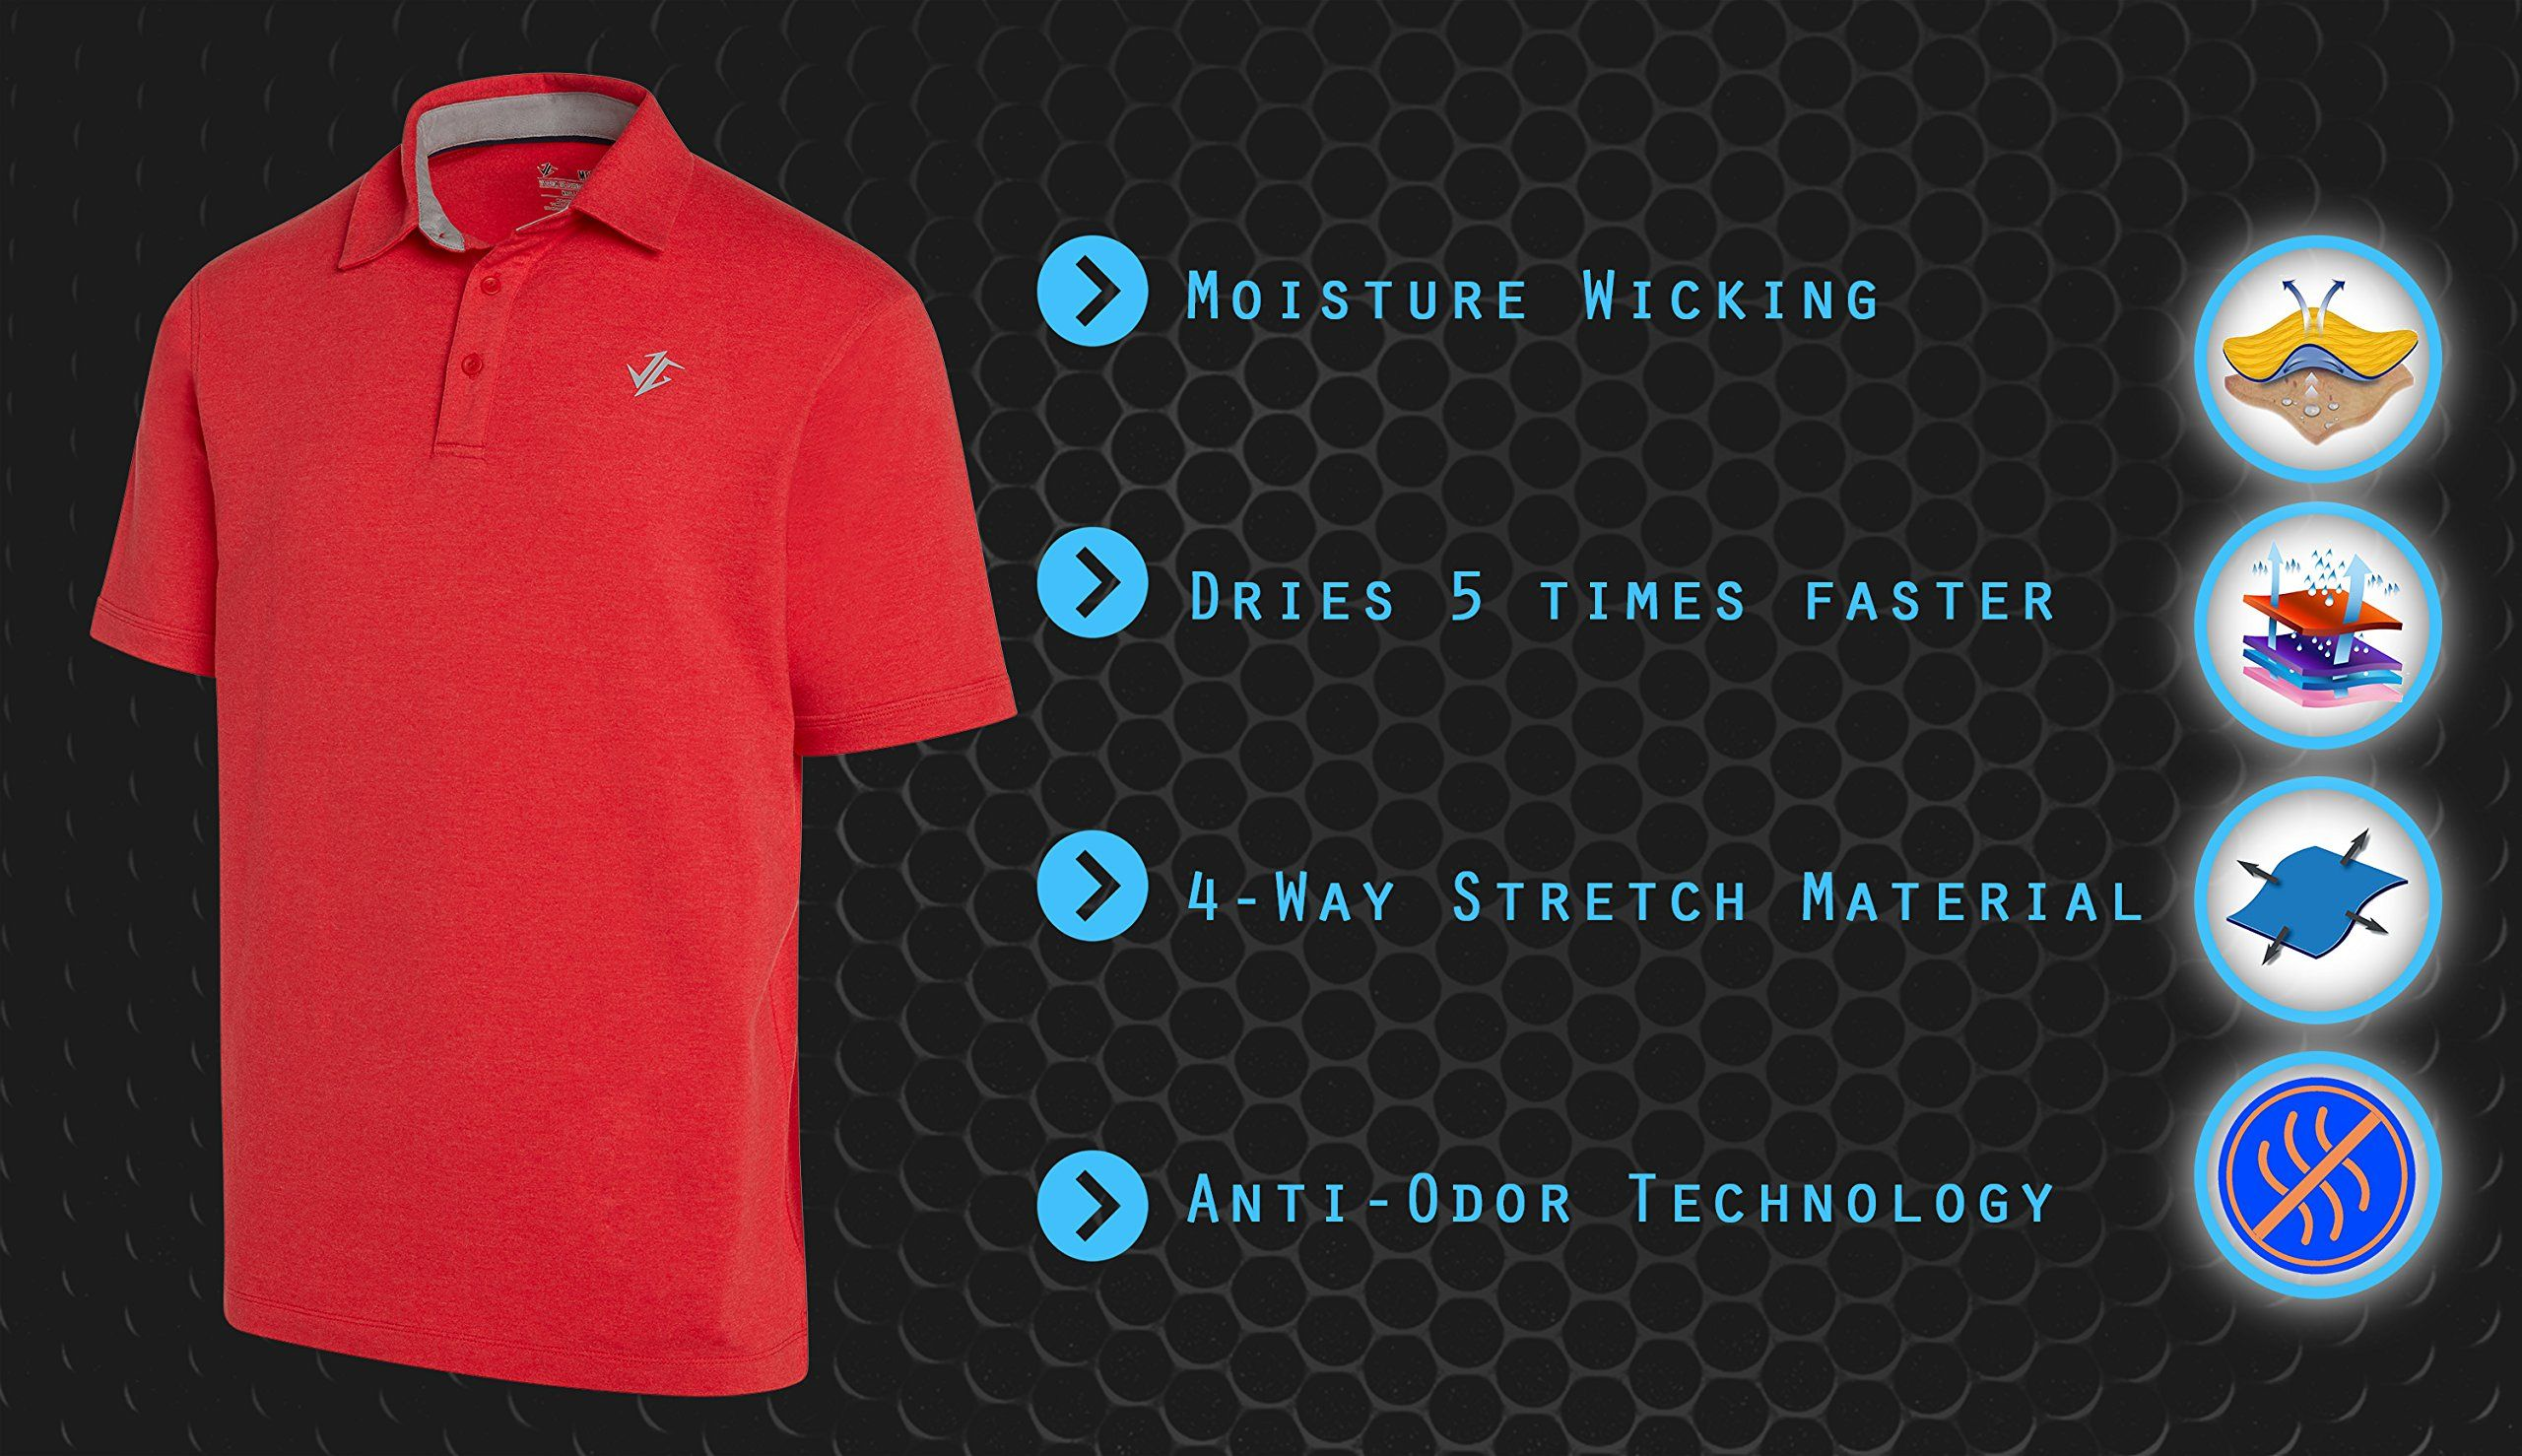 Golf Shirts For Men Dry Fit Cotton Polo Shirt Includes 20 Golfing